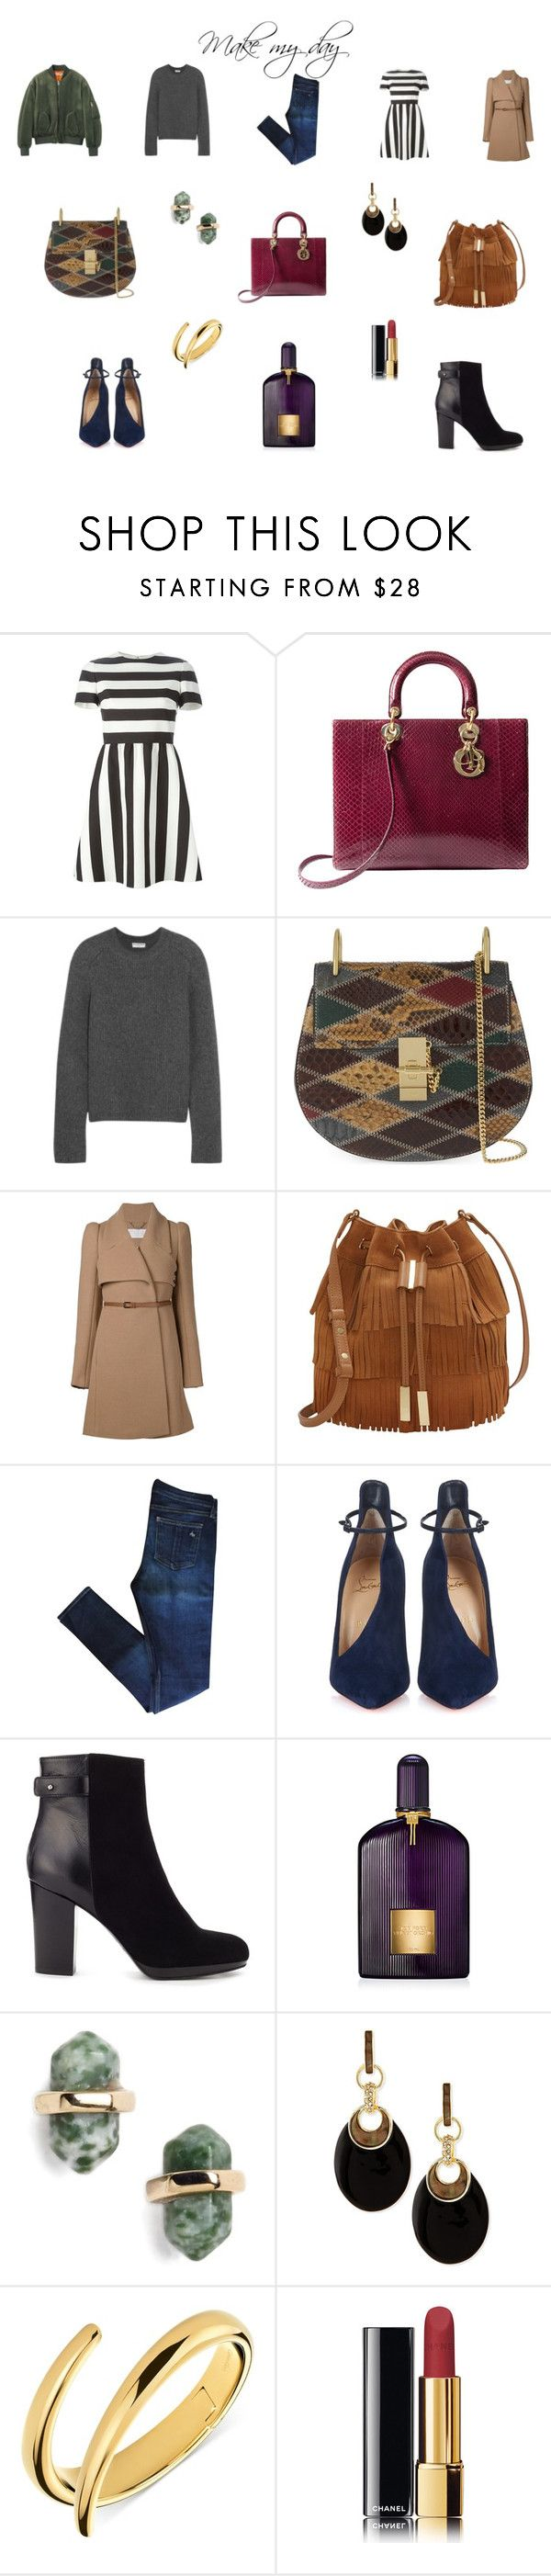 """""""Make my day"""" by mousouza on Polyvore featuring Valentino, Balenciaga, Chloé, Vince Camuto, rag & bone, Christian Louboutin, Jigsaw, Tom Ford, Nordstrom and Alexis Bittar"""